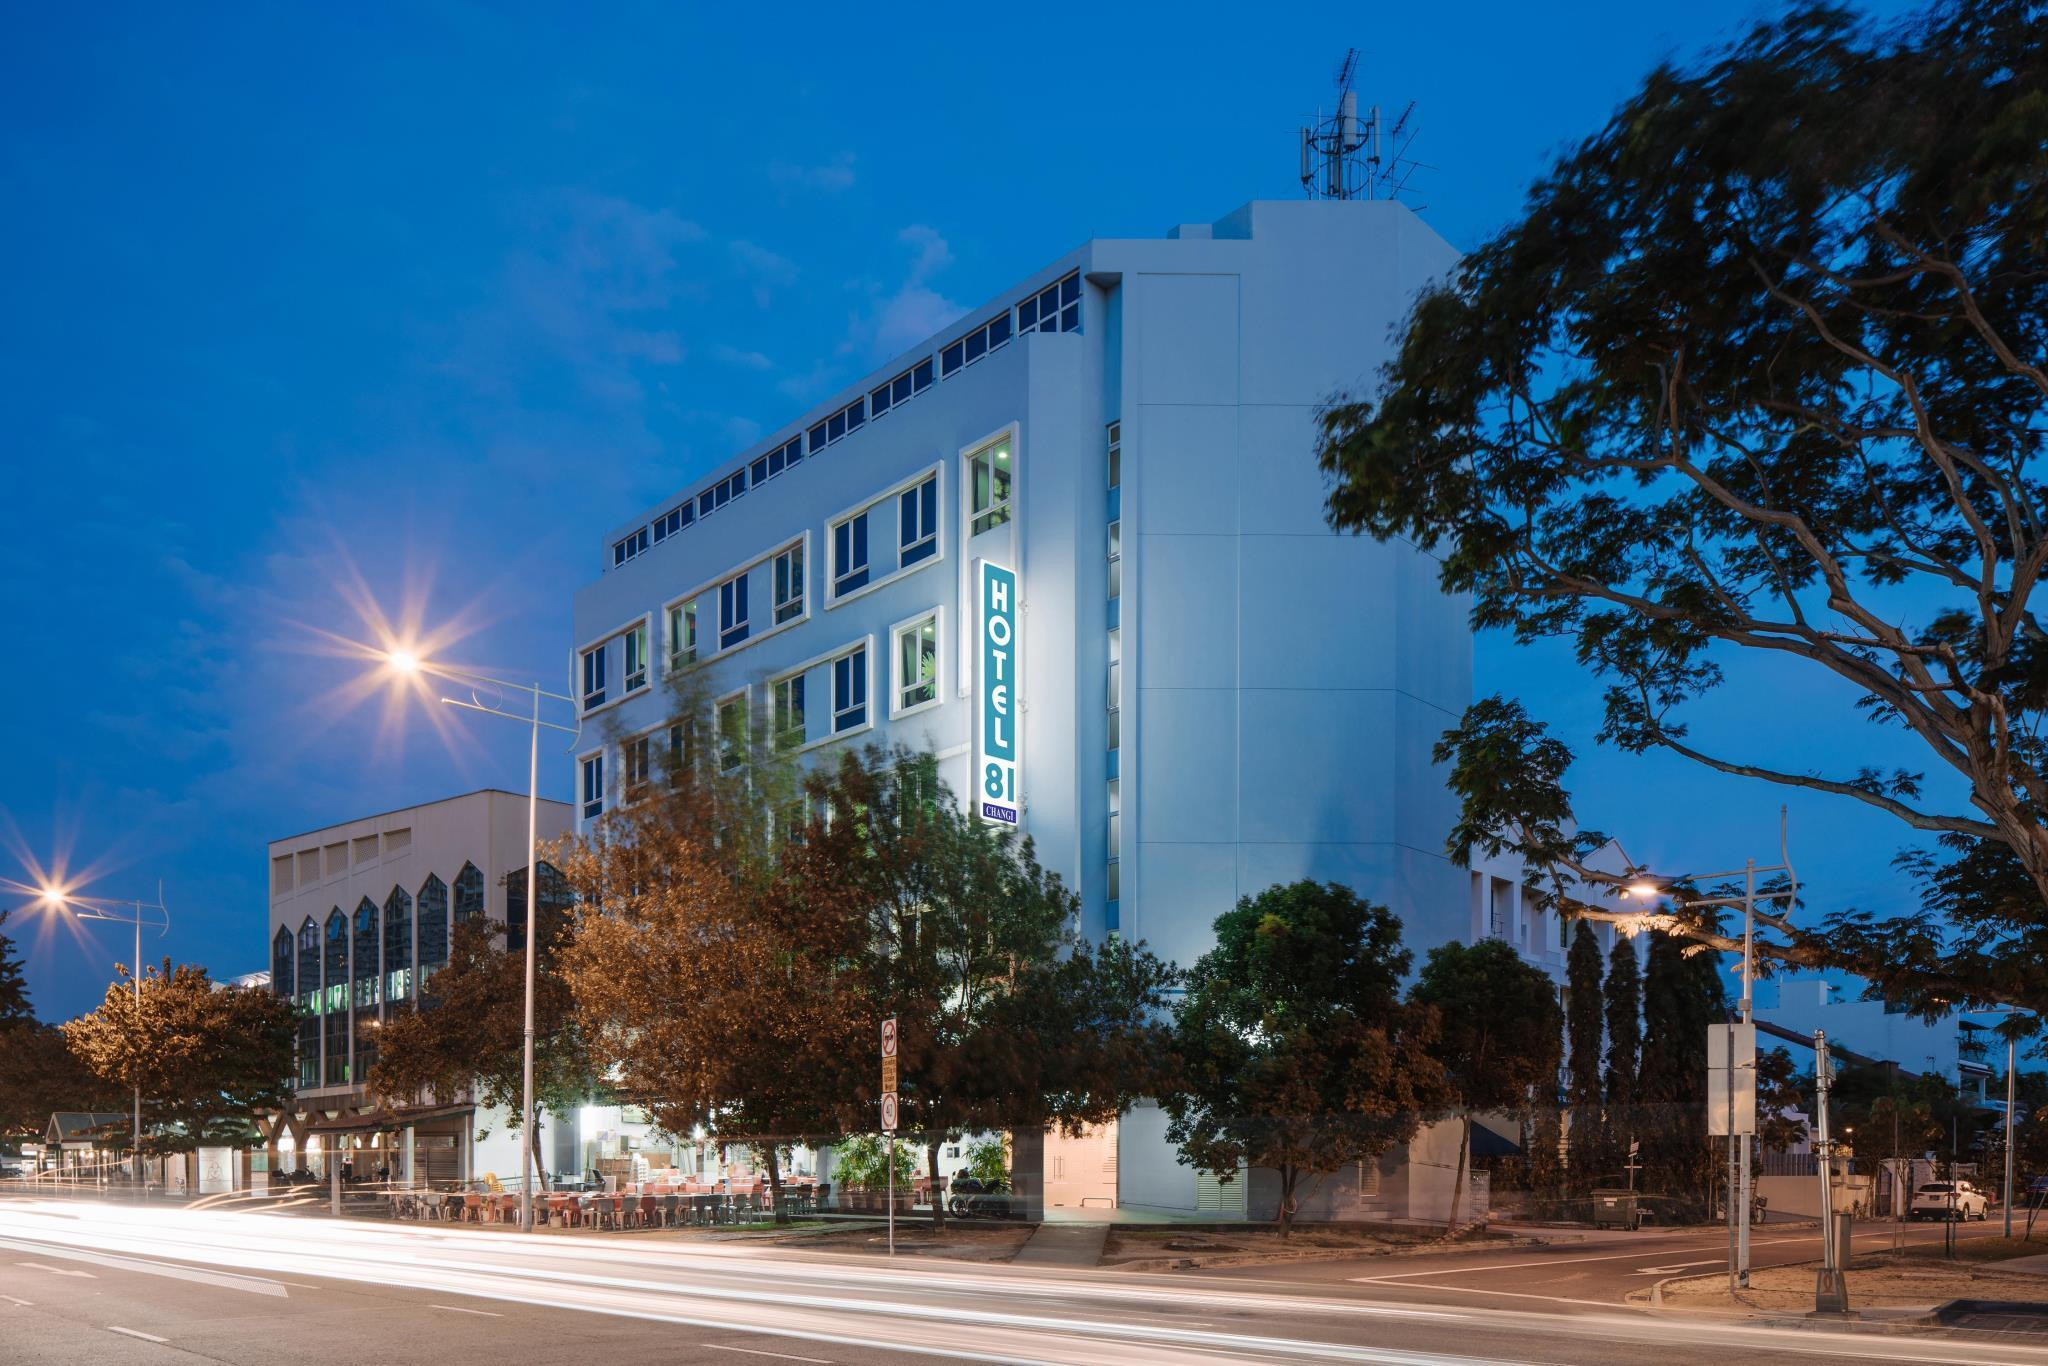 Hotel 81 Changi In Singapore Rooms Deals Reviews